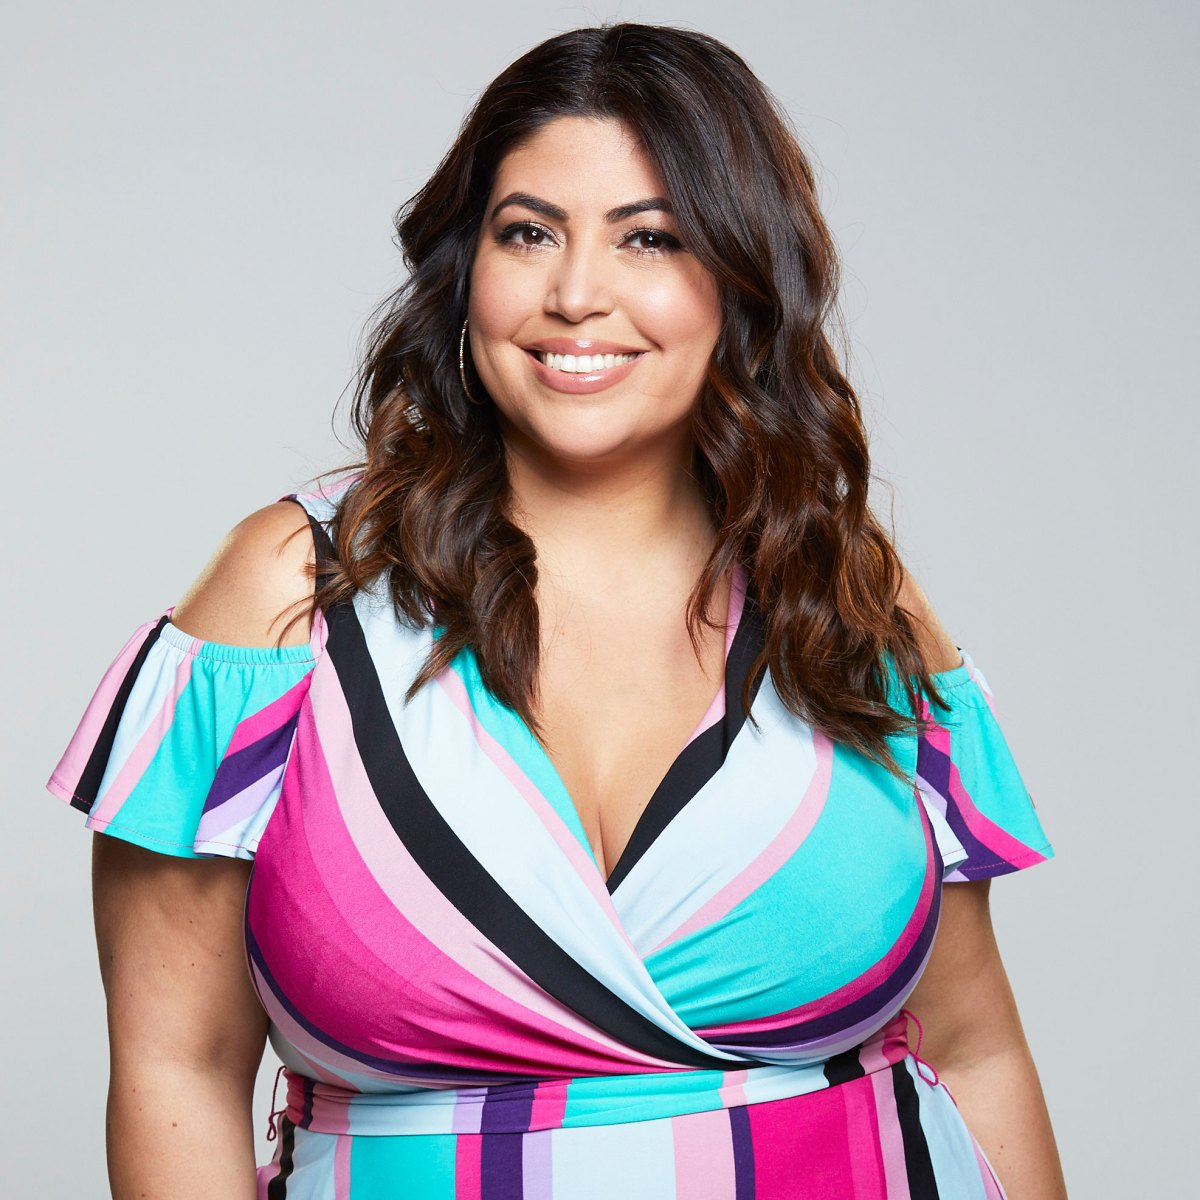 Big Brother' Season 21 Cast Announced: Meet the 16 Houseguests